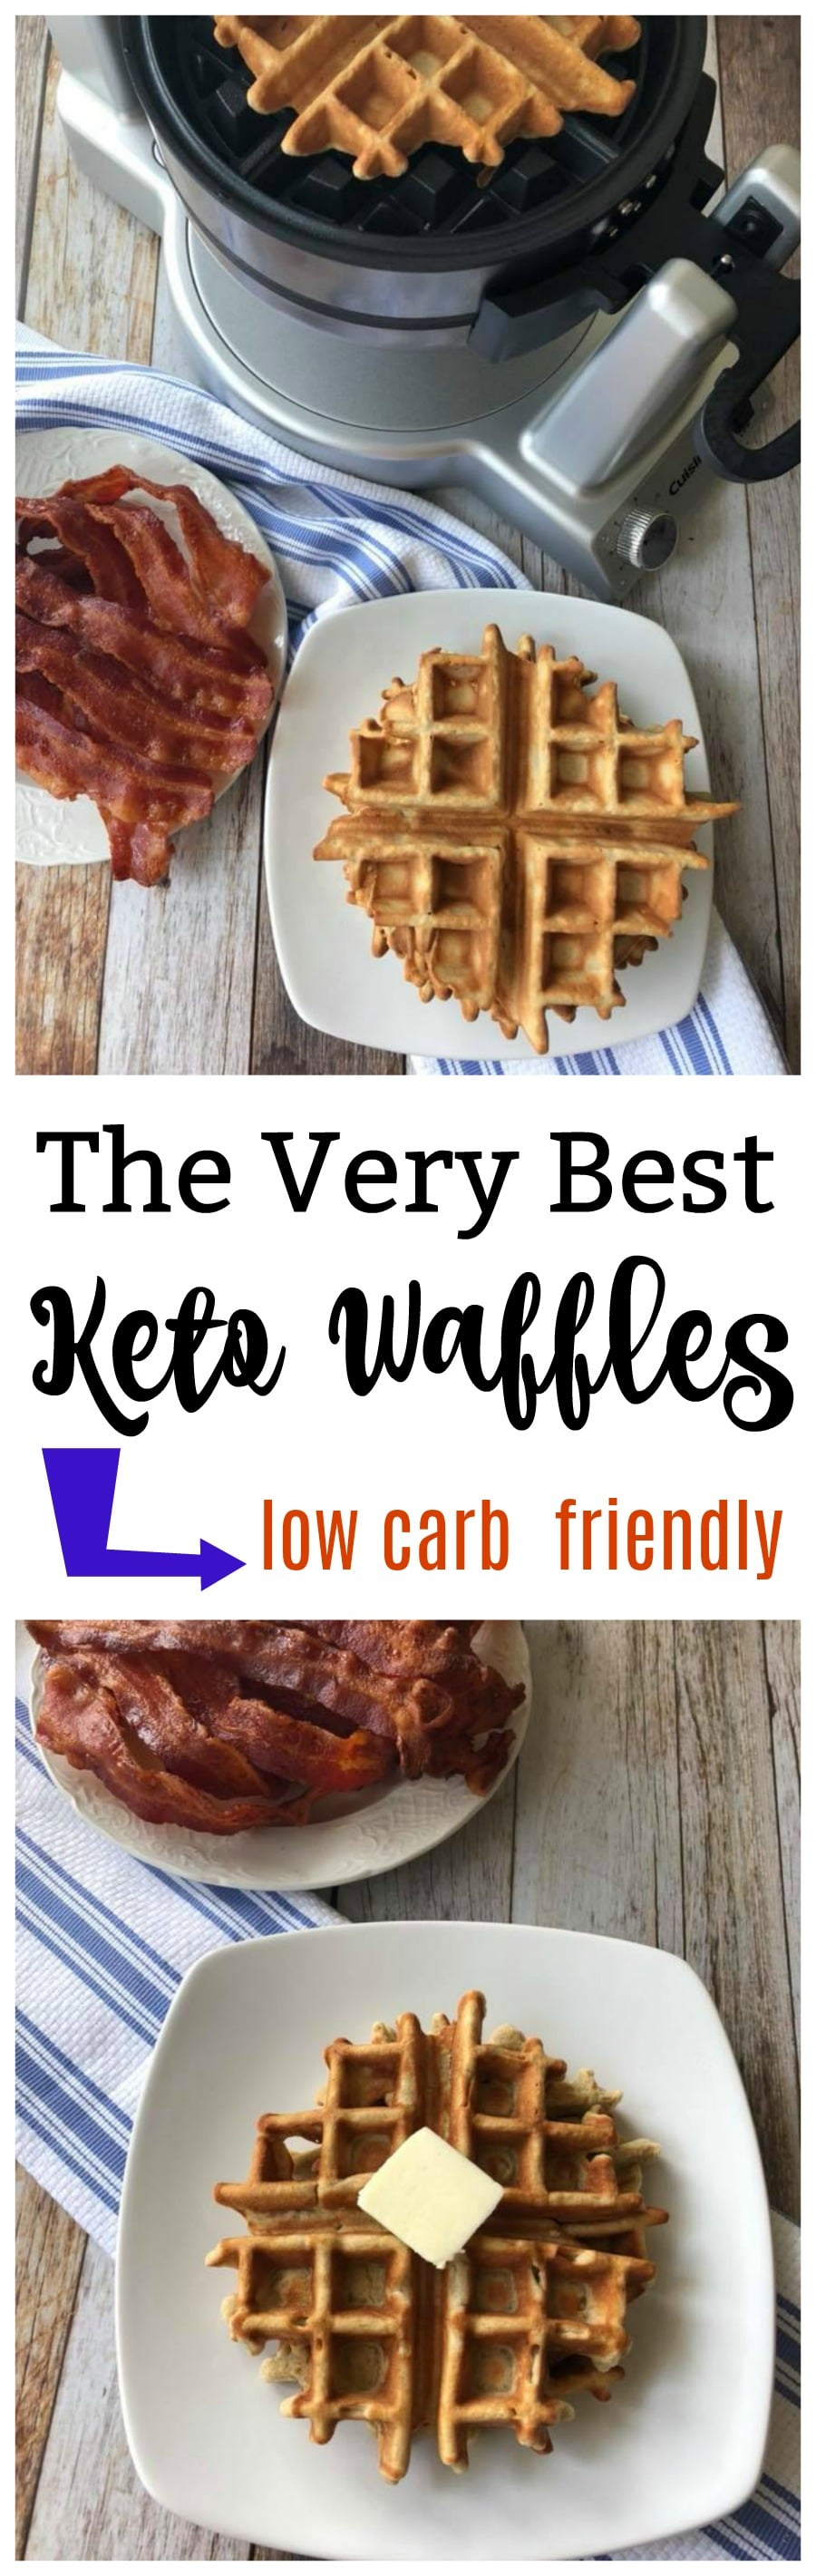 The Very Best Keto Waffles are amazingly light and fluffy and so easy to make. You can make a batch to freeze for easy breakfasts later. These are a perfect prep ahead breakfast idea that fits into the low carb diet plan!